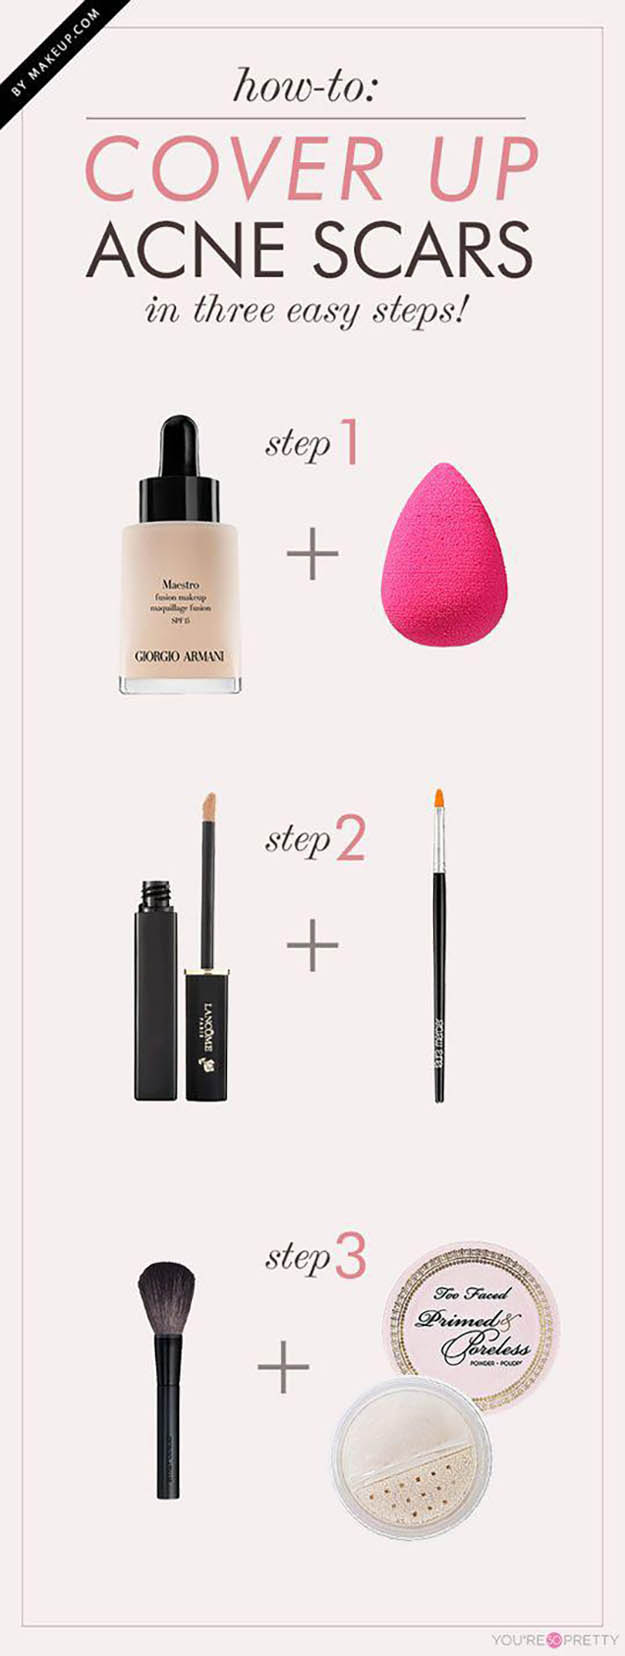 Check out 36 Amazing Beauty Hacks | To Die For Make Up Tips at https://diyprojects.com/amazing-beauty-hacks-make-up-tips/